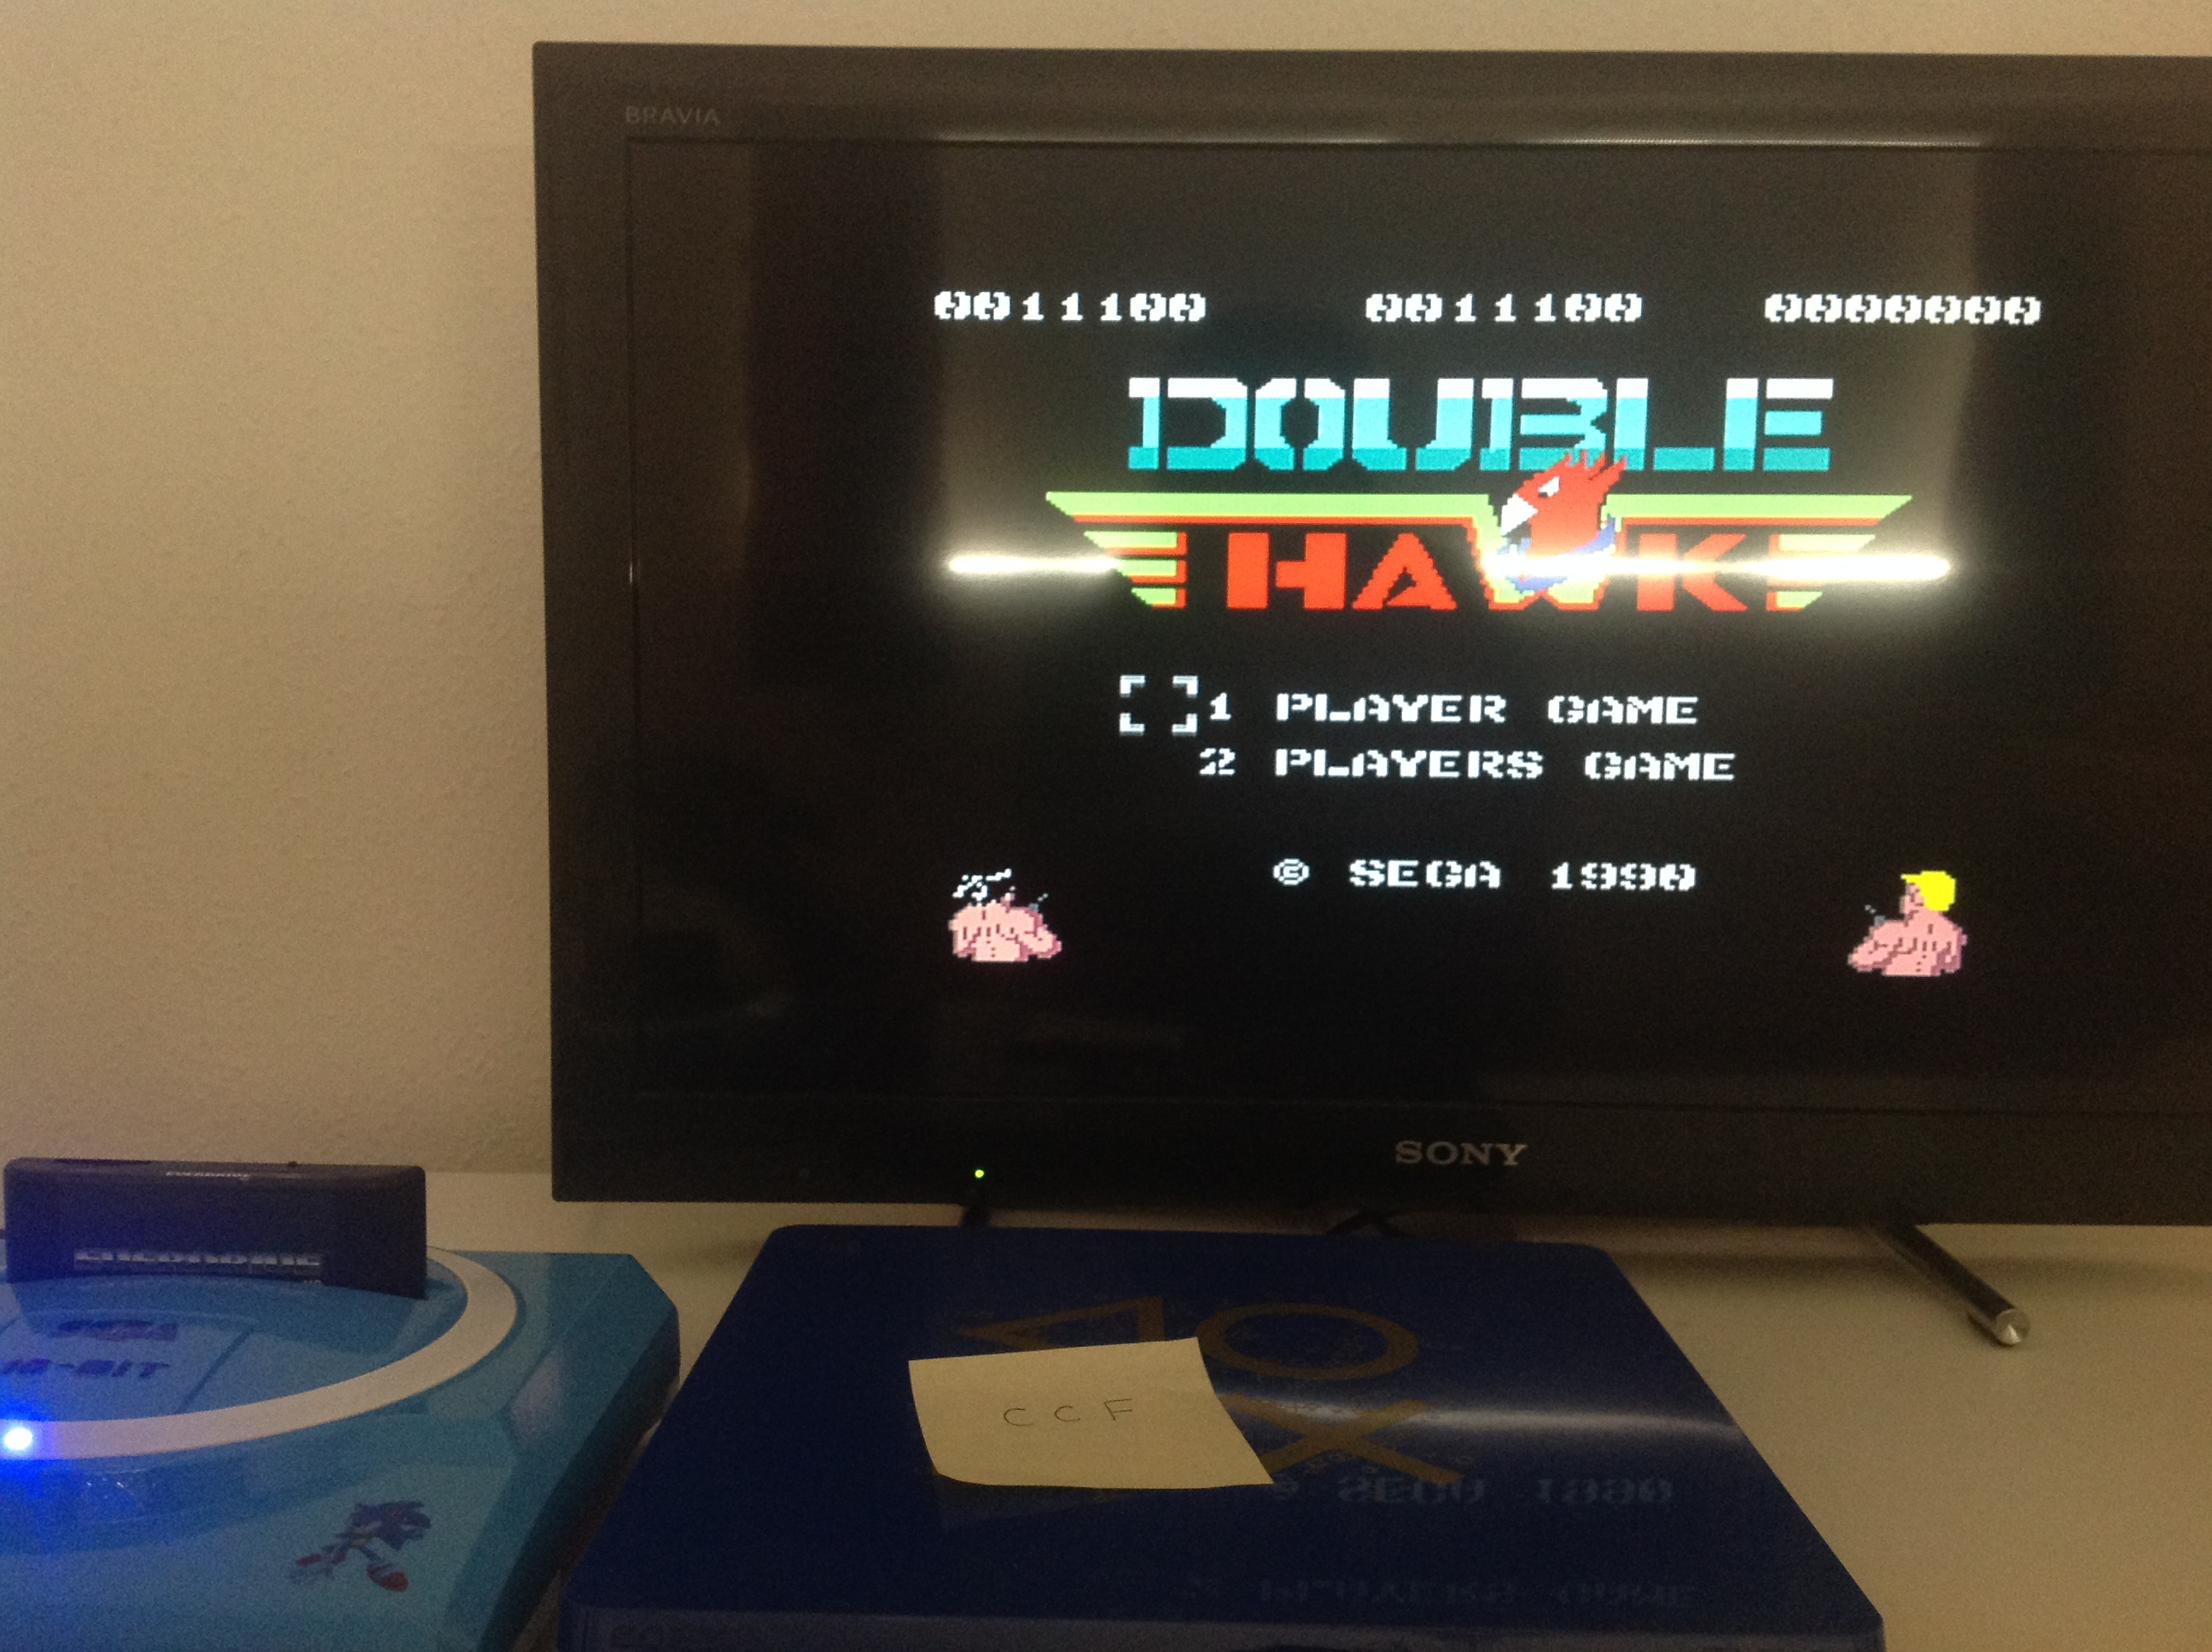 CoCoForest: Double Hawk [Easy] (Sega Master System) 11,100 points on 2018-07-23 08:29:40